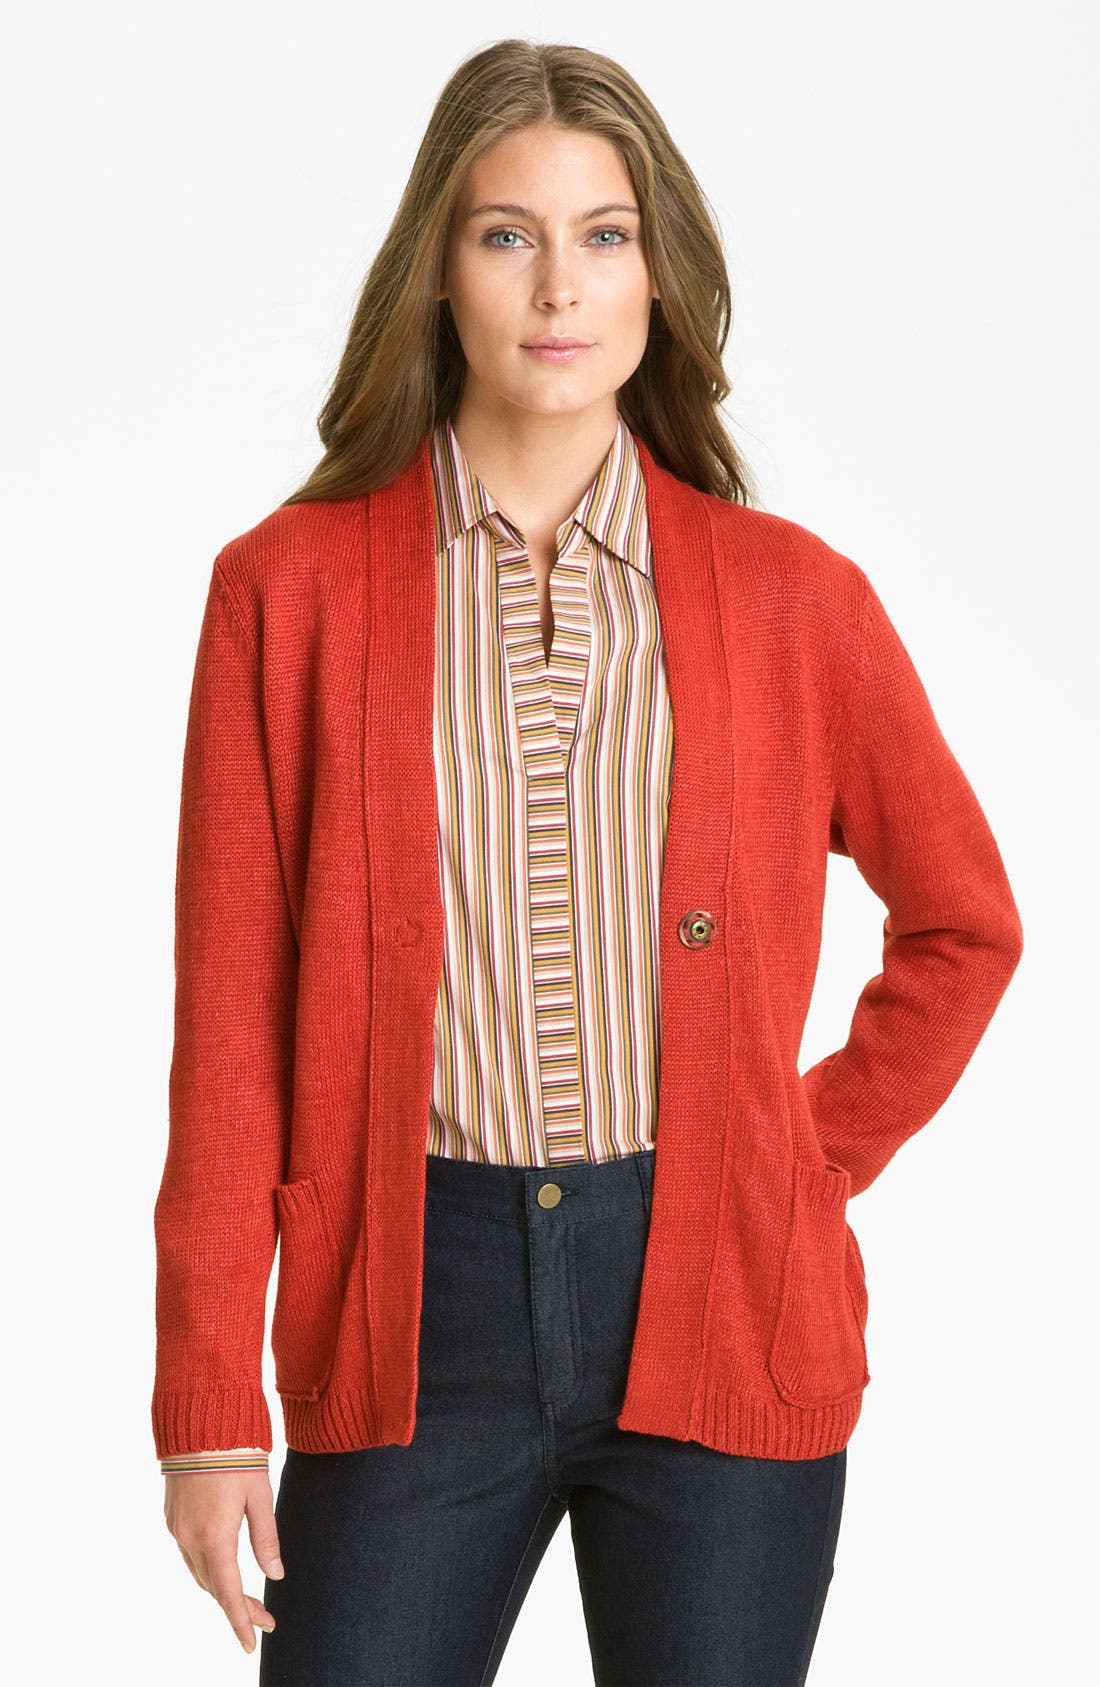 Alternate Image 1 Selected - Lafayette 148 New York 'Canapa Jeans' Cardigan